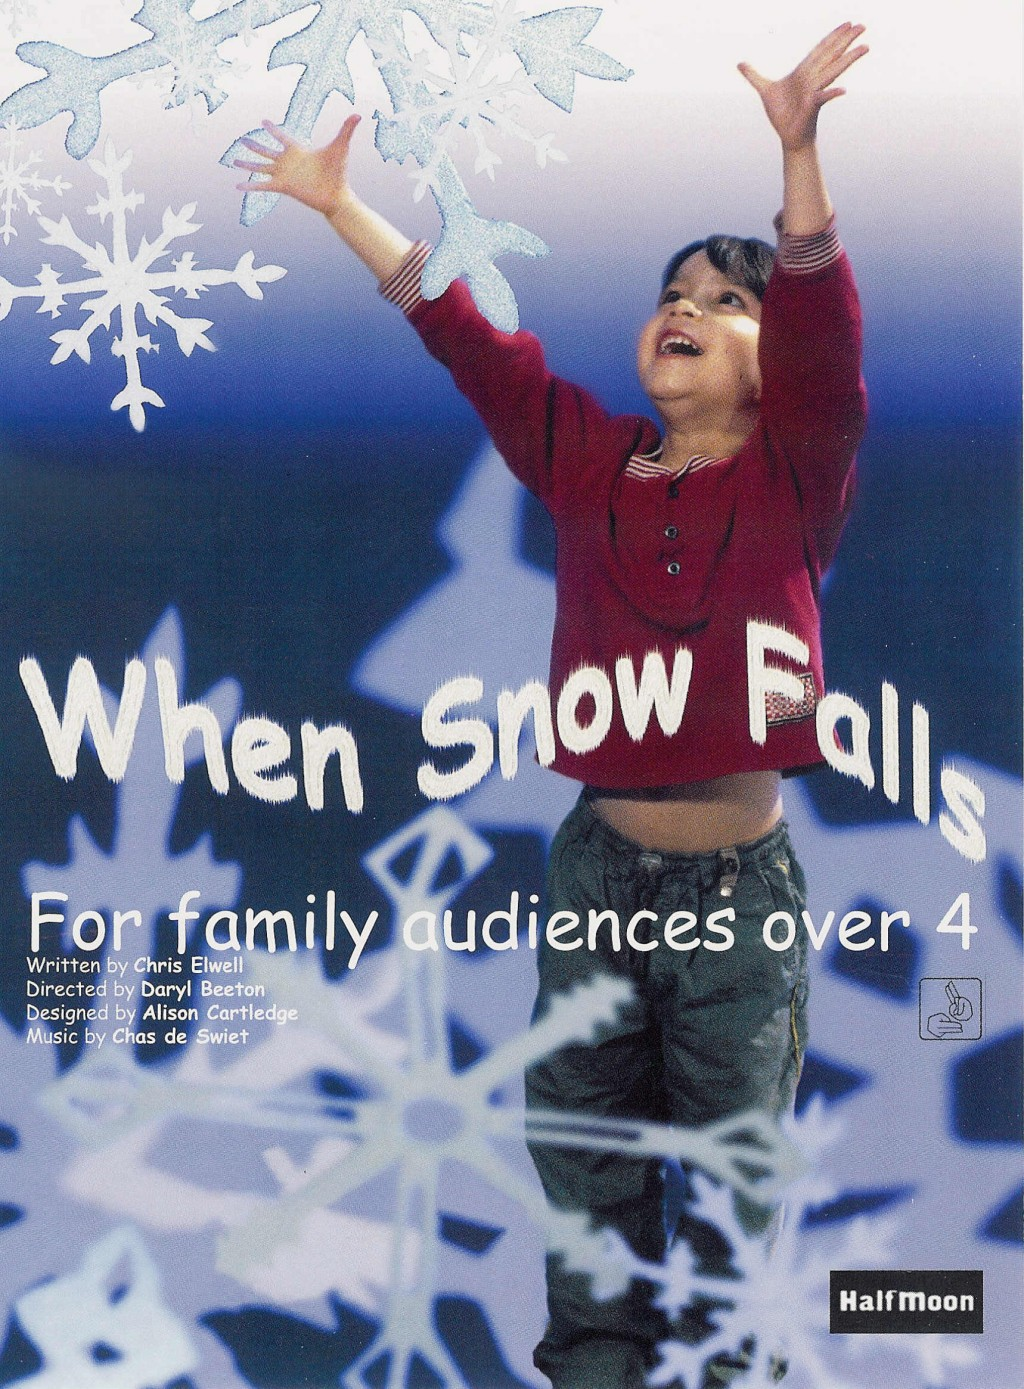 When Snow Falls Flyer Image